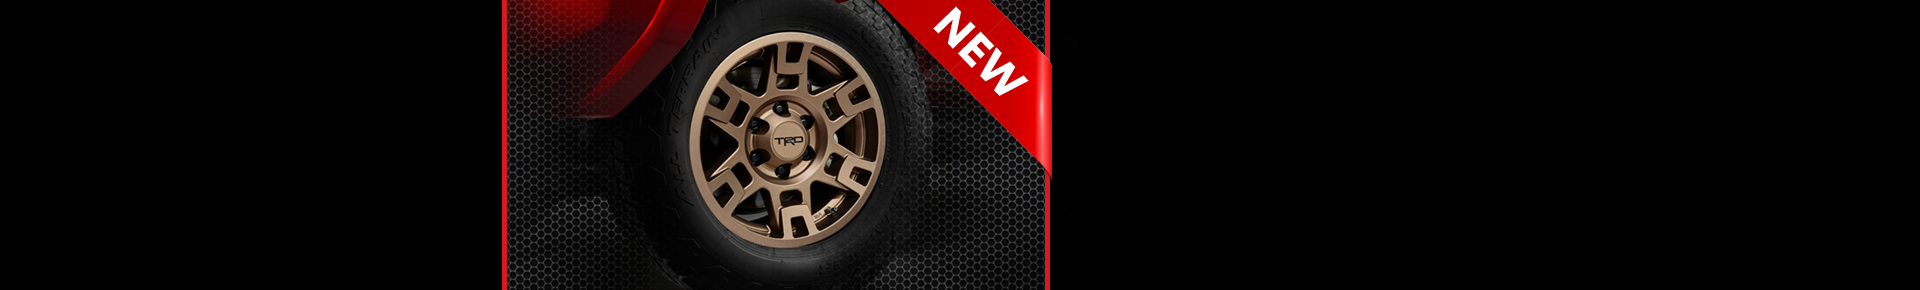 New TRD bronze wheels available now!